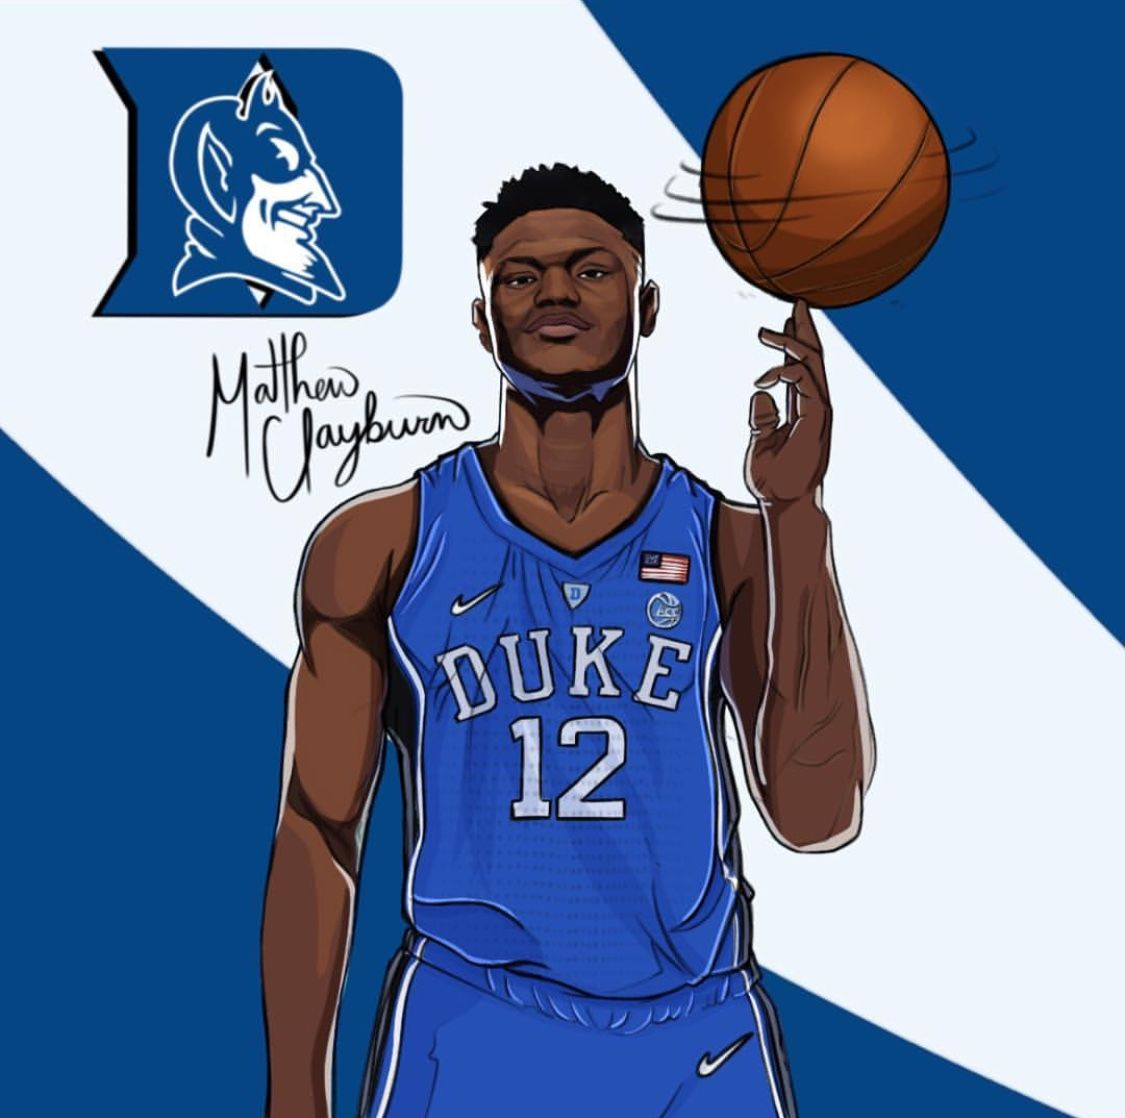 Zion Williamson chose duke. Wow what a shocker Nba art